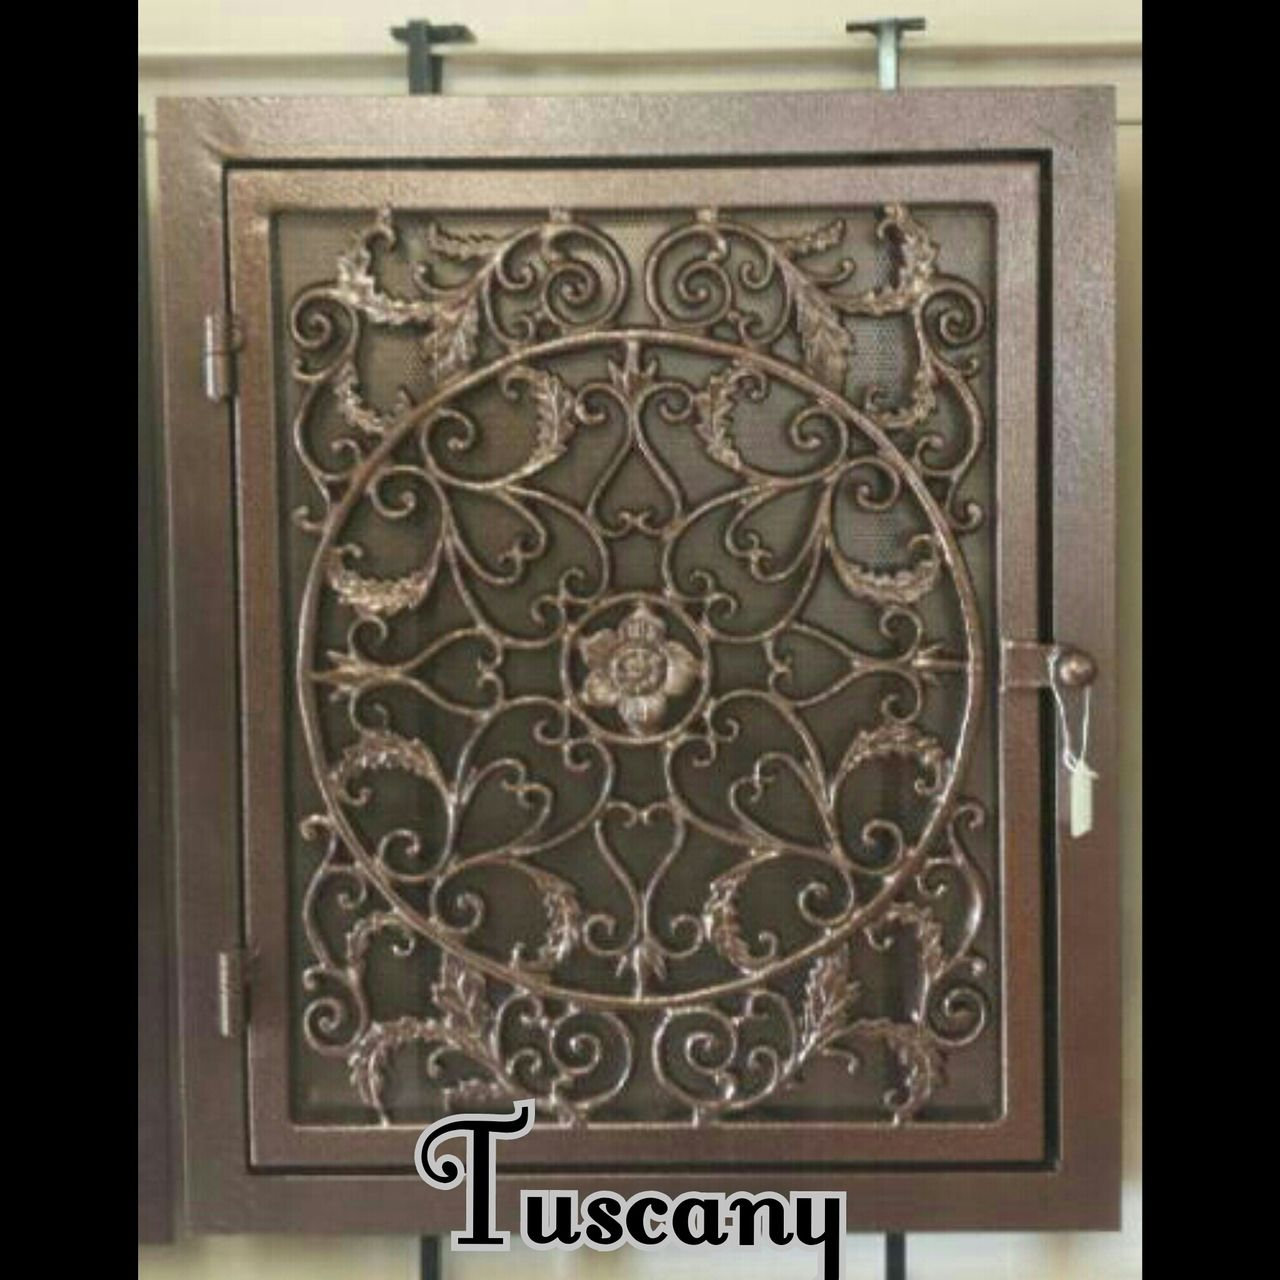 Tuscany Handmade Wrought Iron Return Air Filter Frame